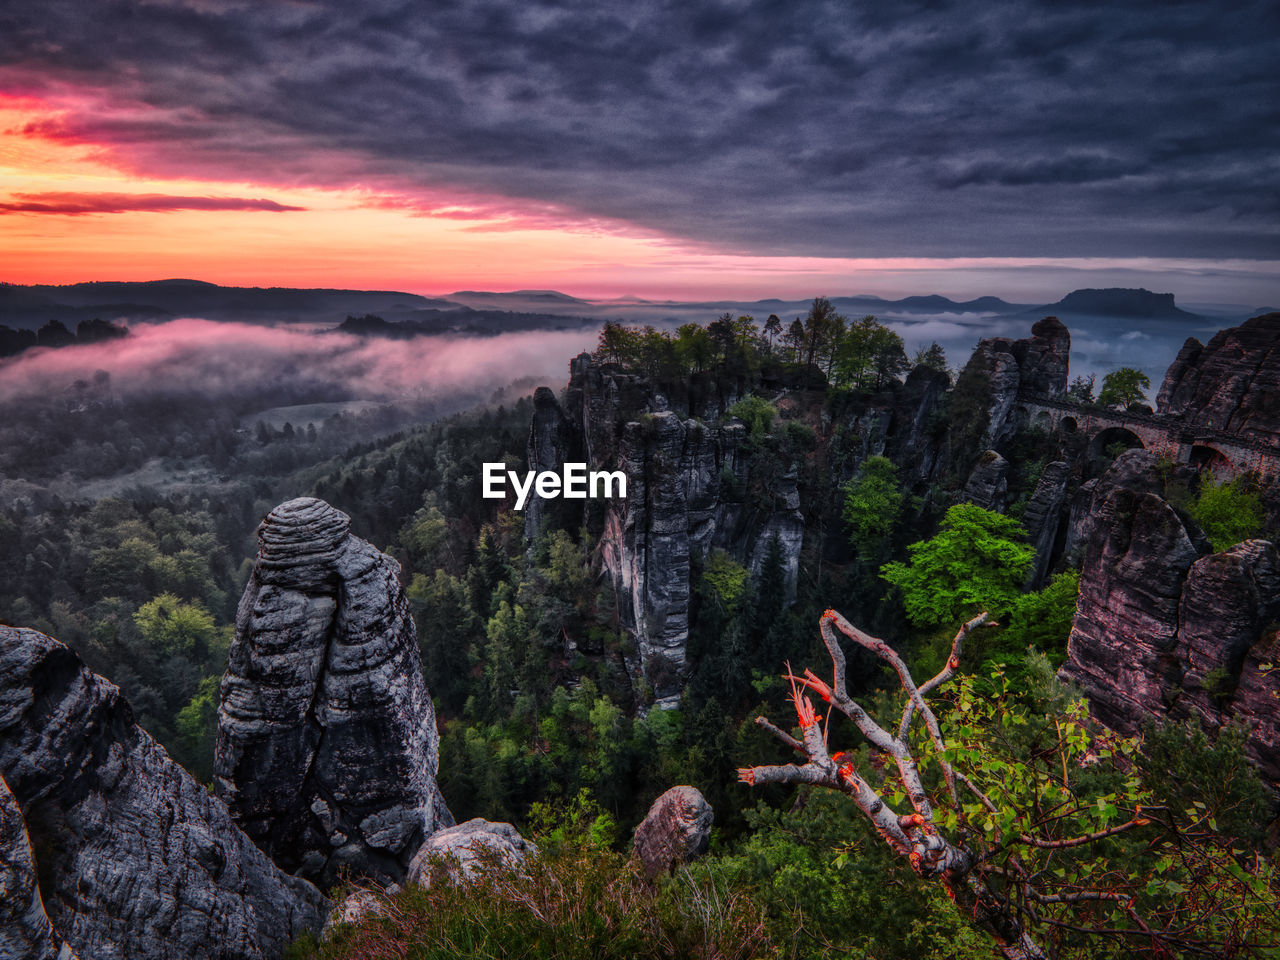 sky, cloud - sky, scenics - nature, beauty in nature, tranquil scene, mountain, sunset, tranquility, nature, environment, no people, rock, land, landscape, non-urban scene, solid, idyllic, rock - object, tree, outdoors, mountain peak